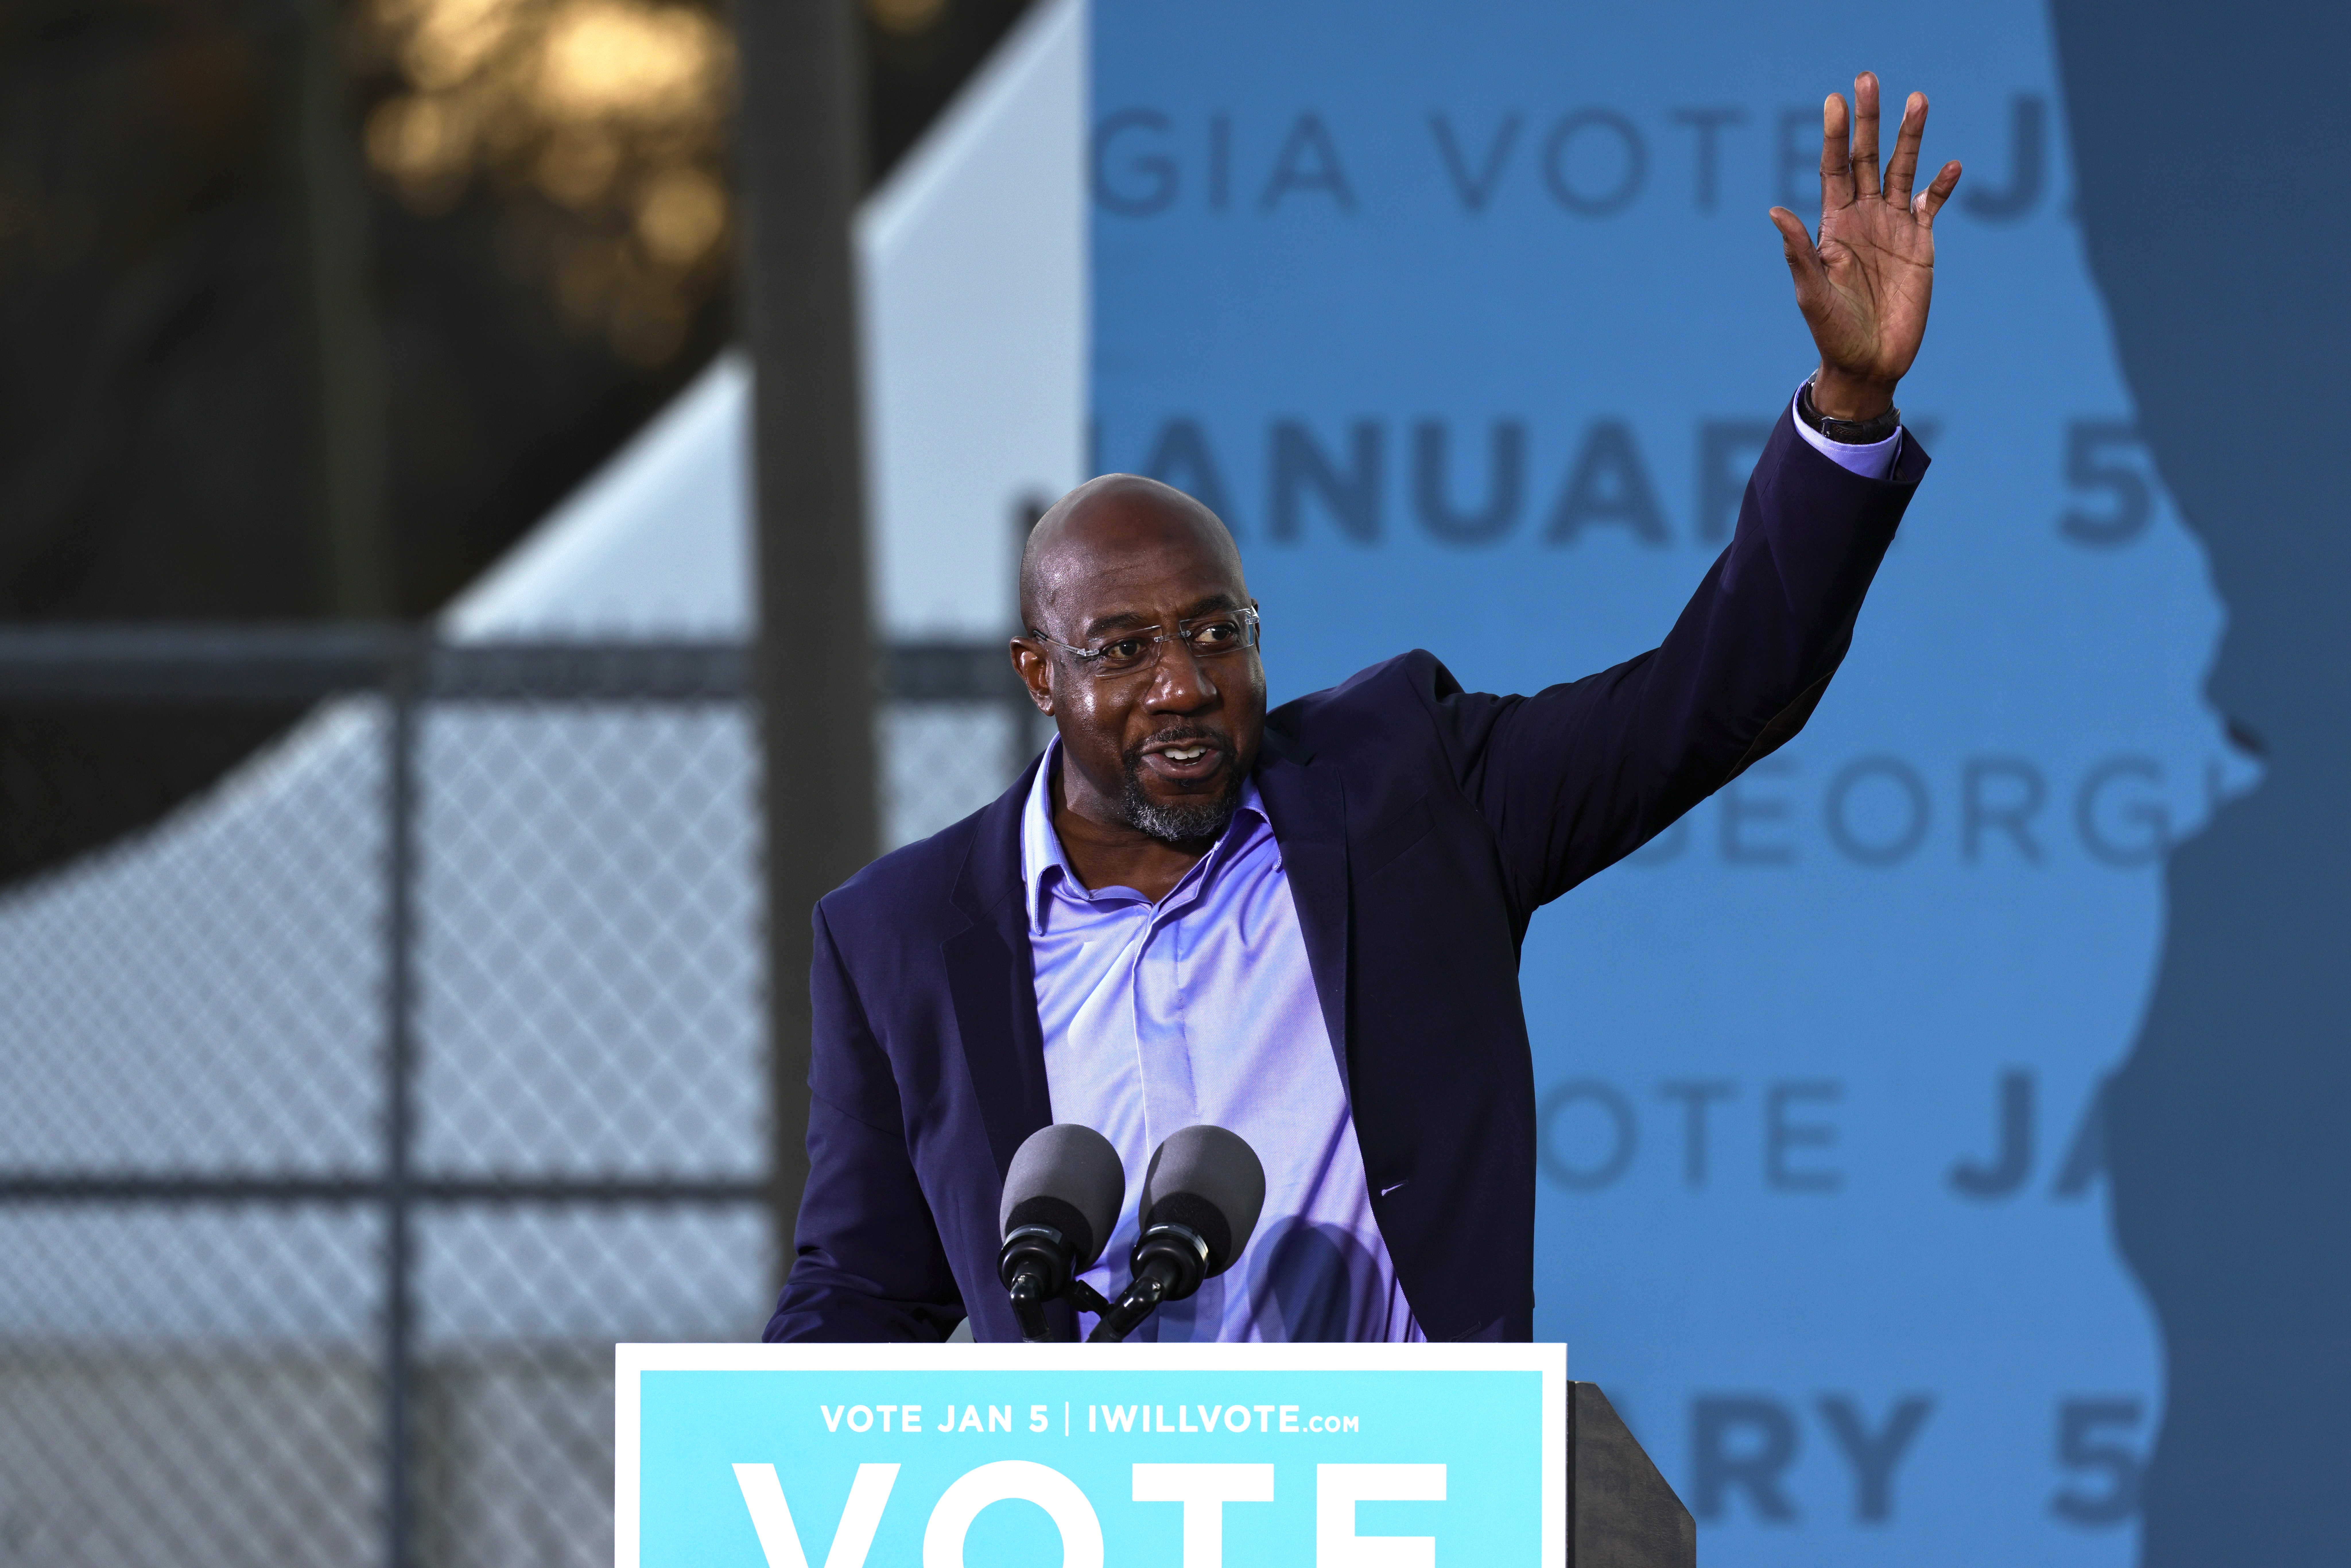 Georgia Democratic Senate candidate Rev. Raphael Warnock waves after finishing his speech during a drive-in rally at Garden City Stadium on January 03, 2021 in Savannah, Georgia.